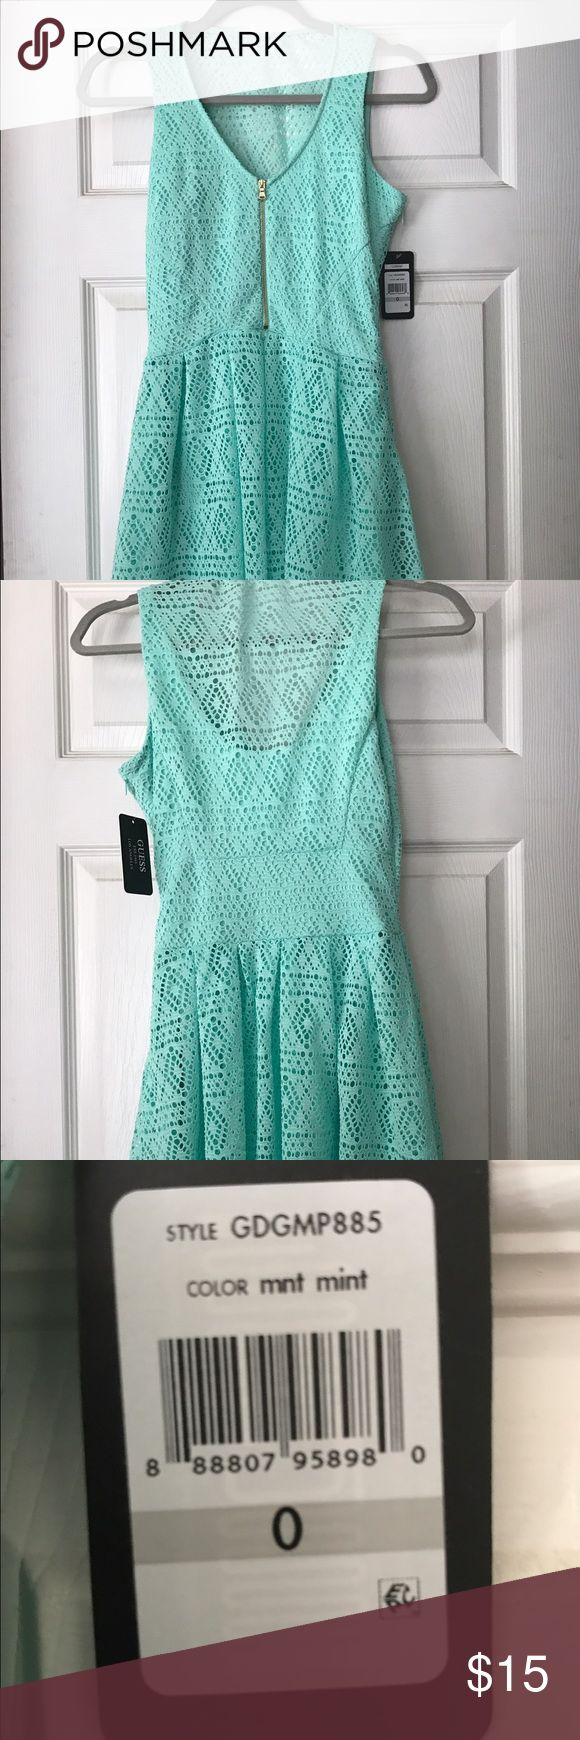 Guess dress new with tags Beautiful green guess dress new with tags size 0 Guess Dresses